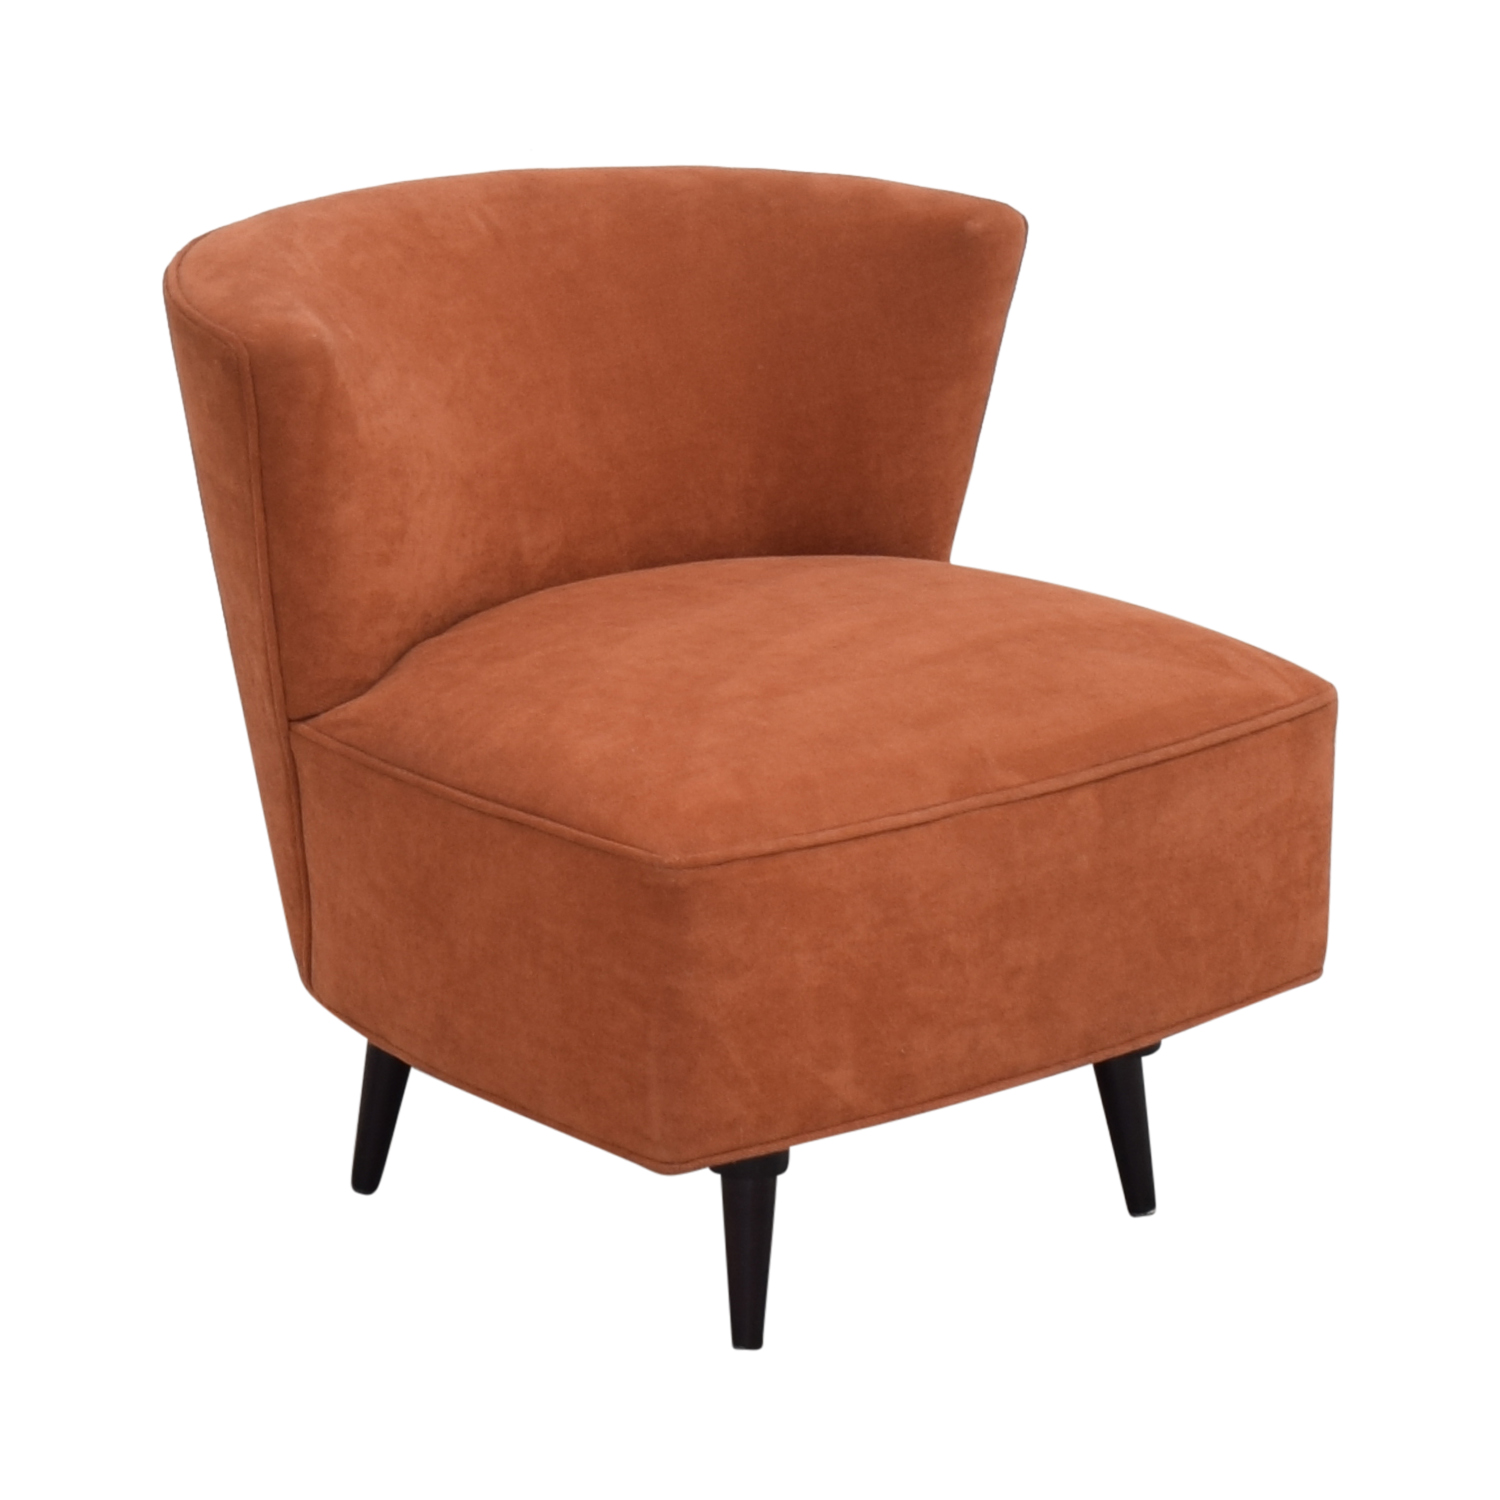 Room & Board Room and Board Mid Century Swivel Chair for sale